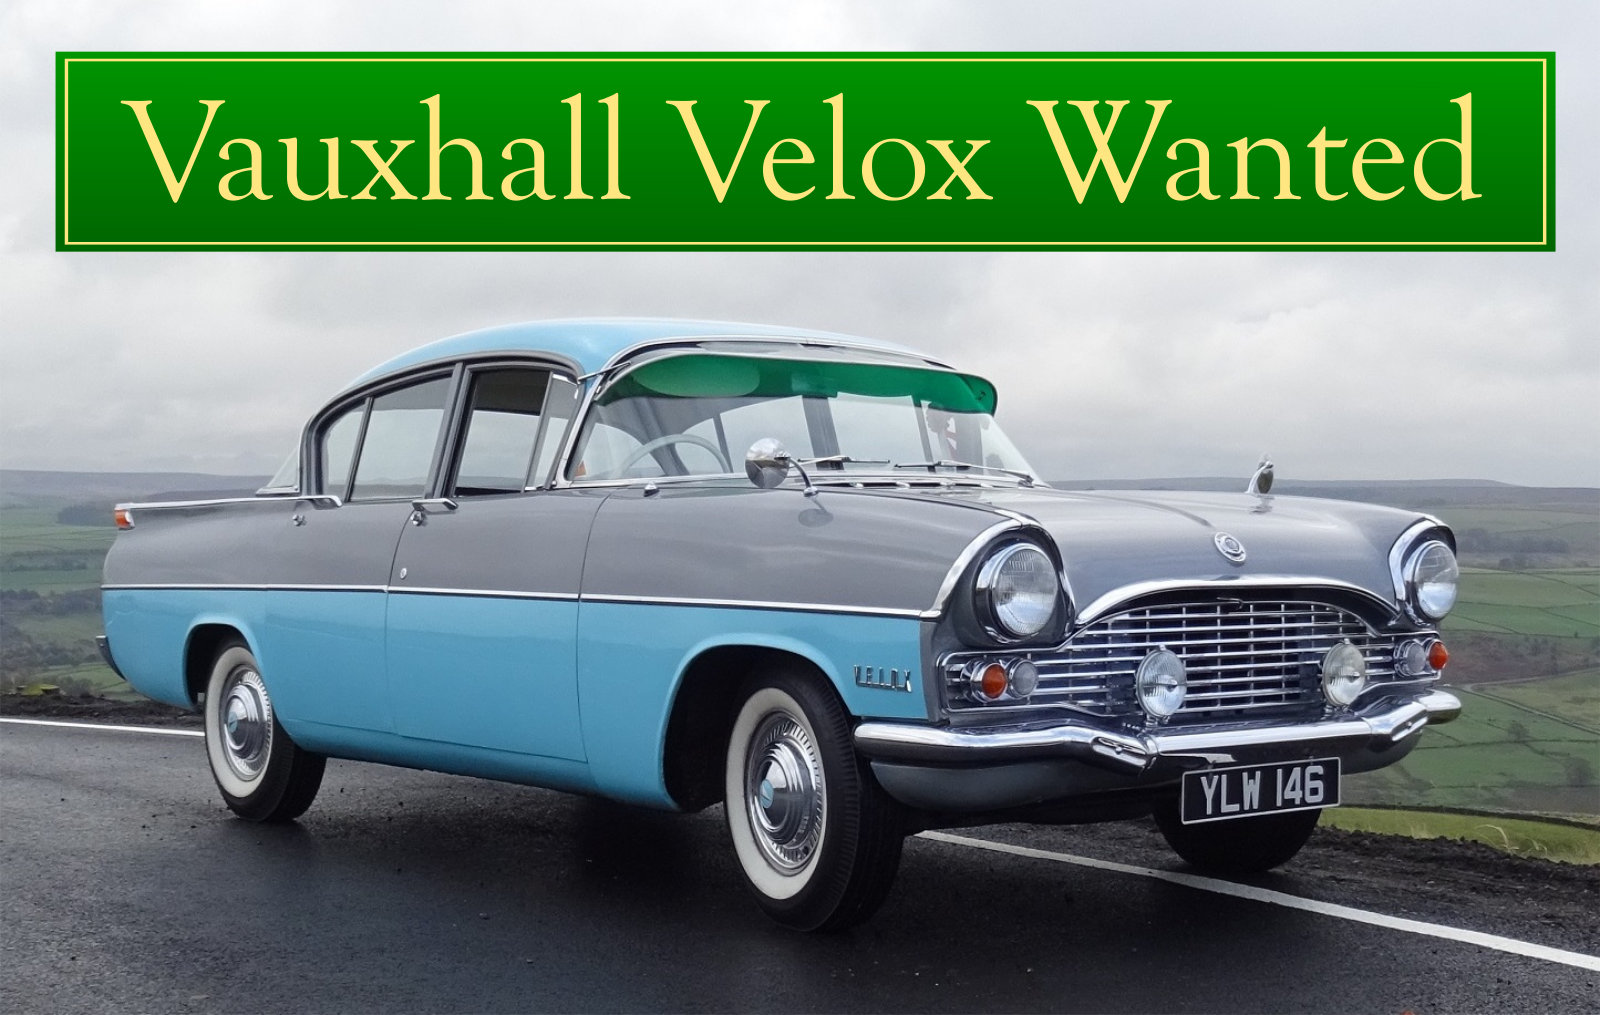 FORD ZEPHYR WANTED, CLASSIC CARS WANTED, IMMEDIATE PAYMENT Wanted (picture 6 of 6)